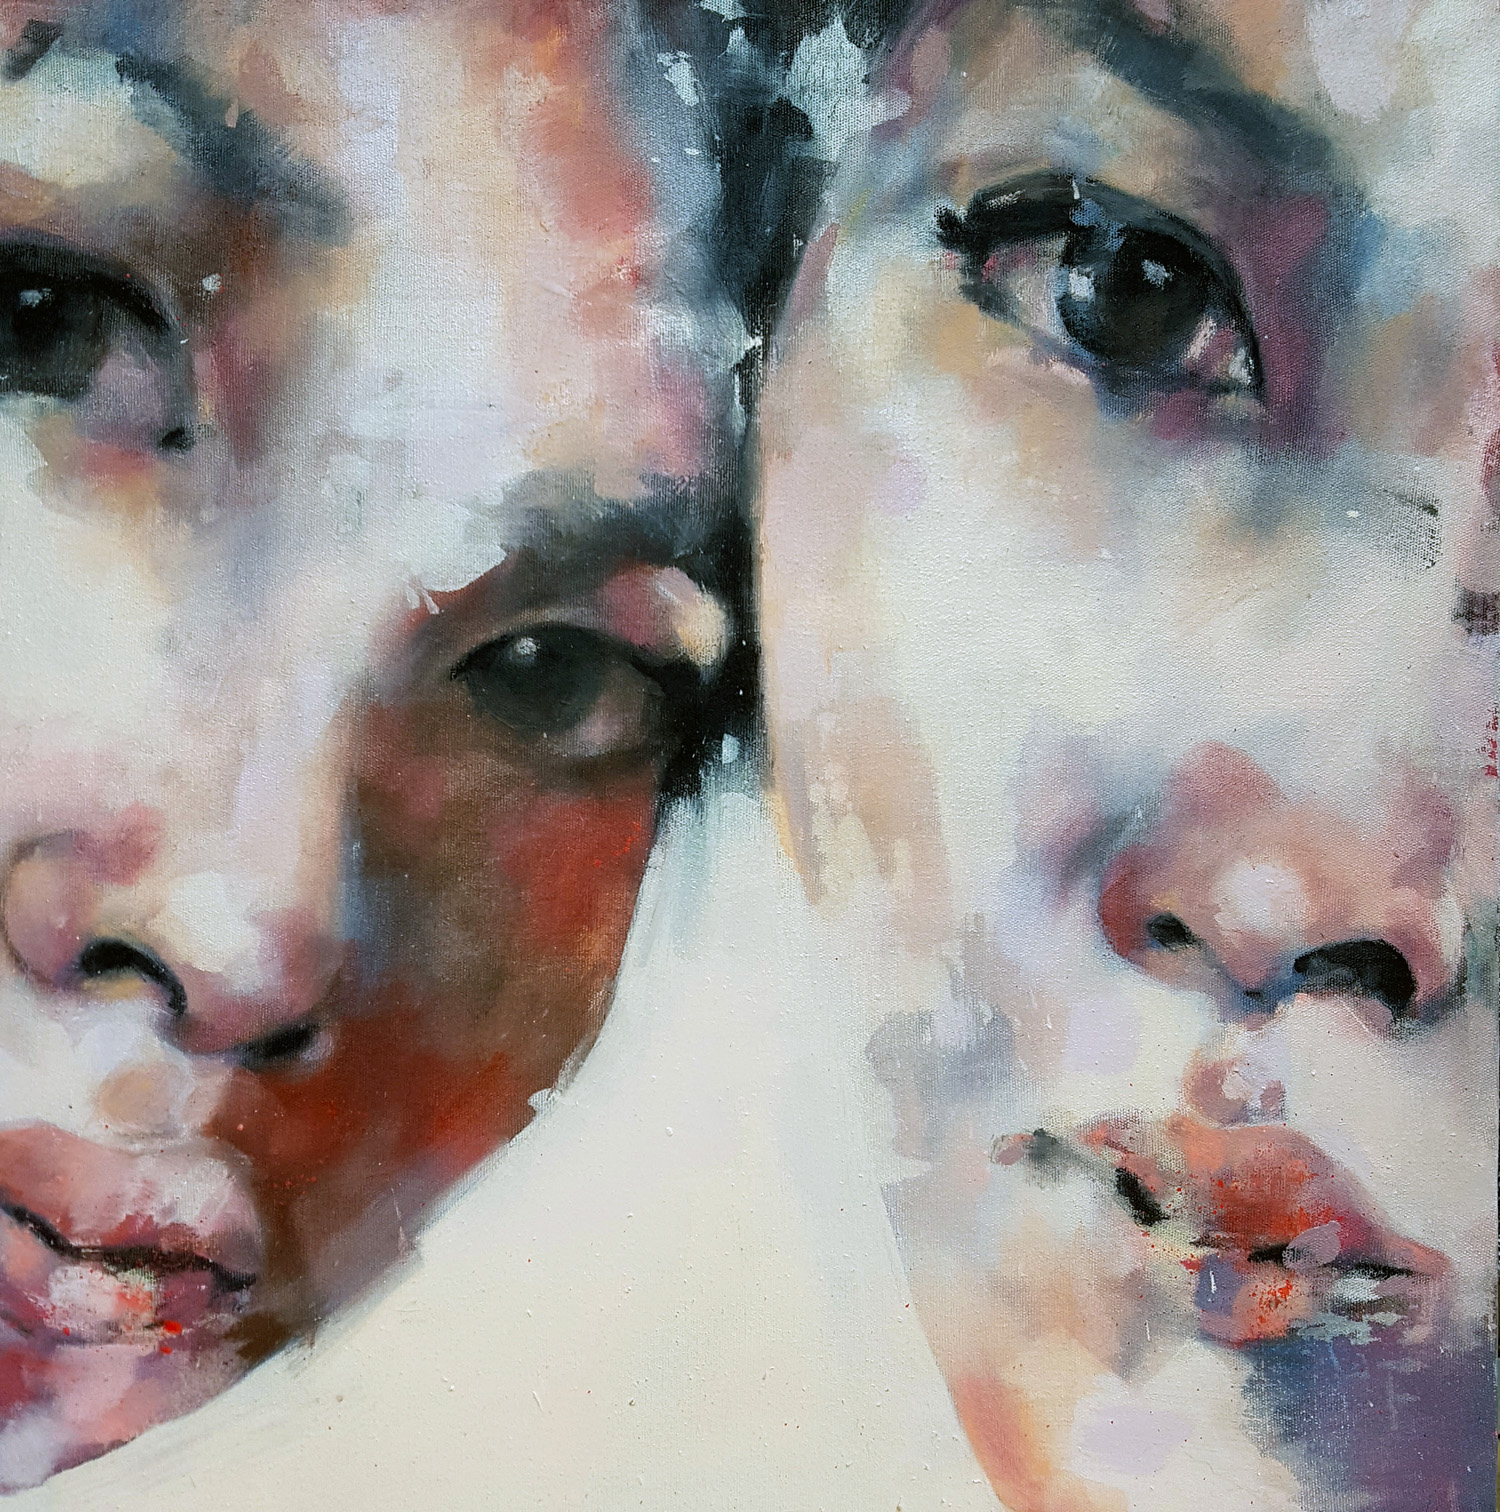 7-24-17 three eyes, oil on canvas, 50x50cm